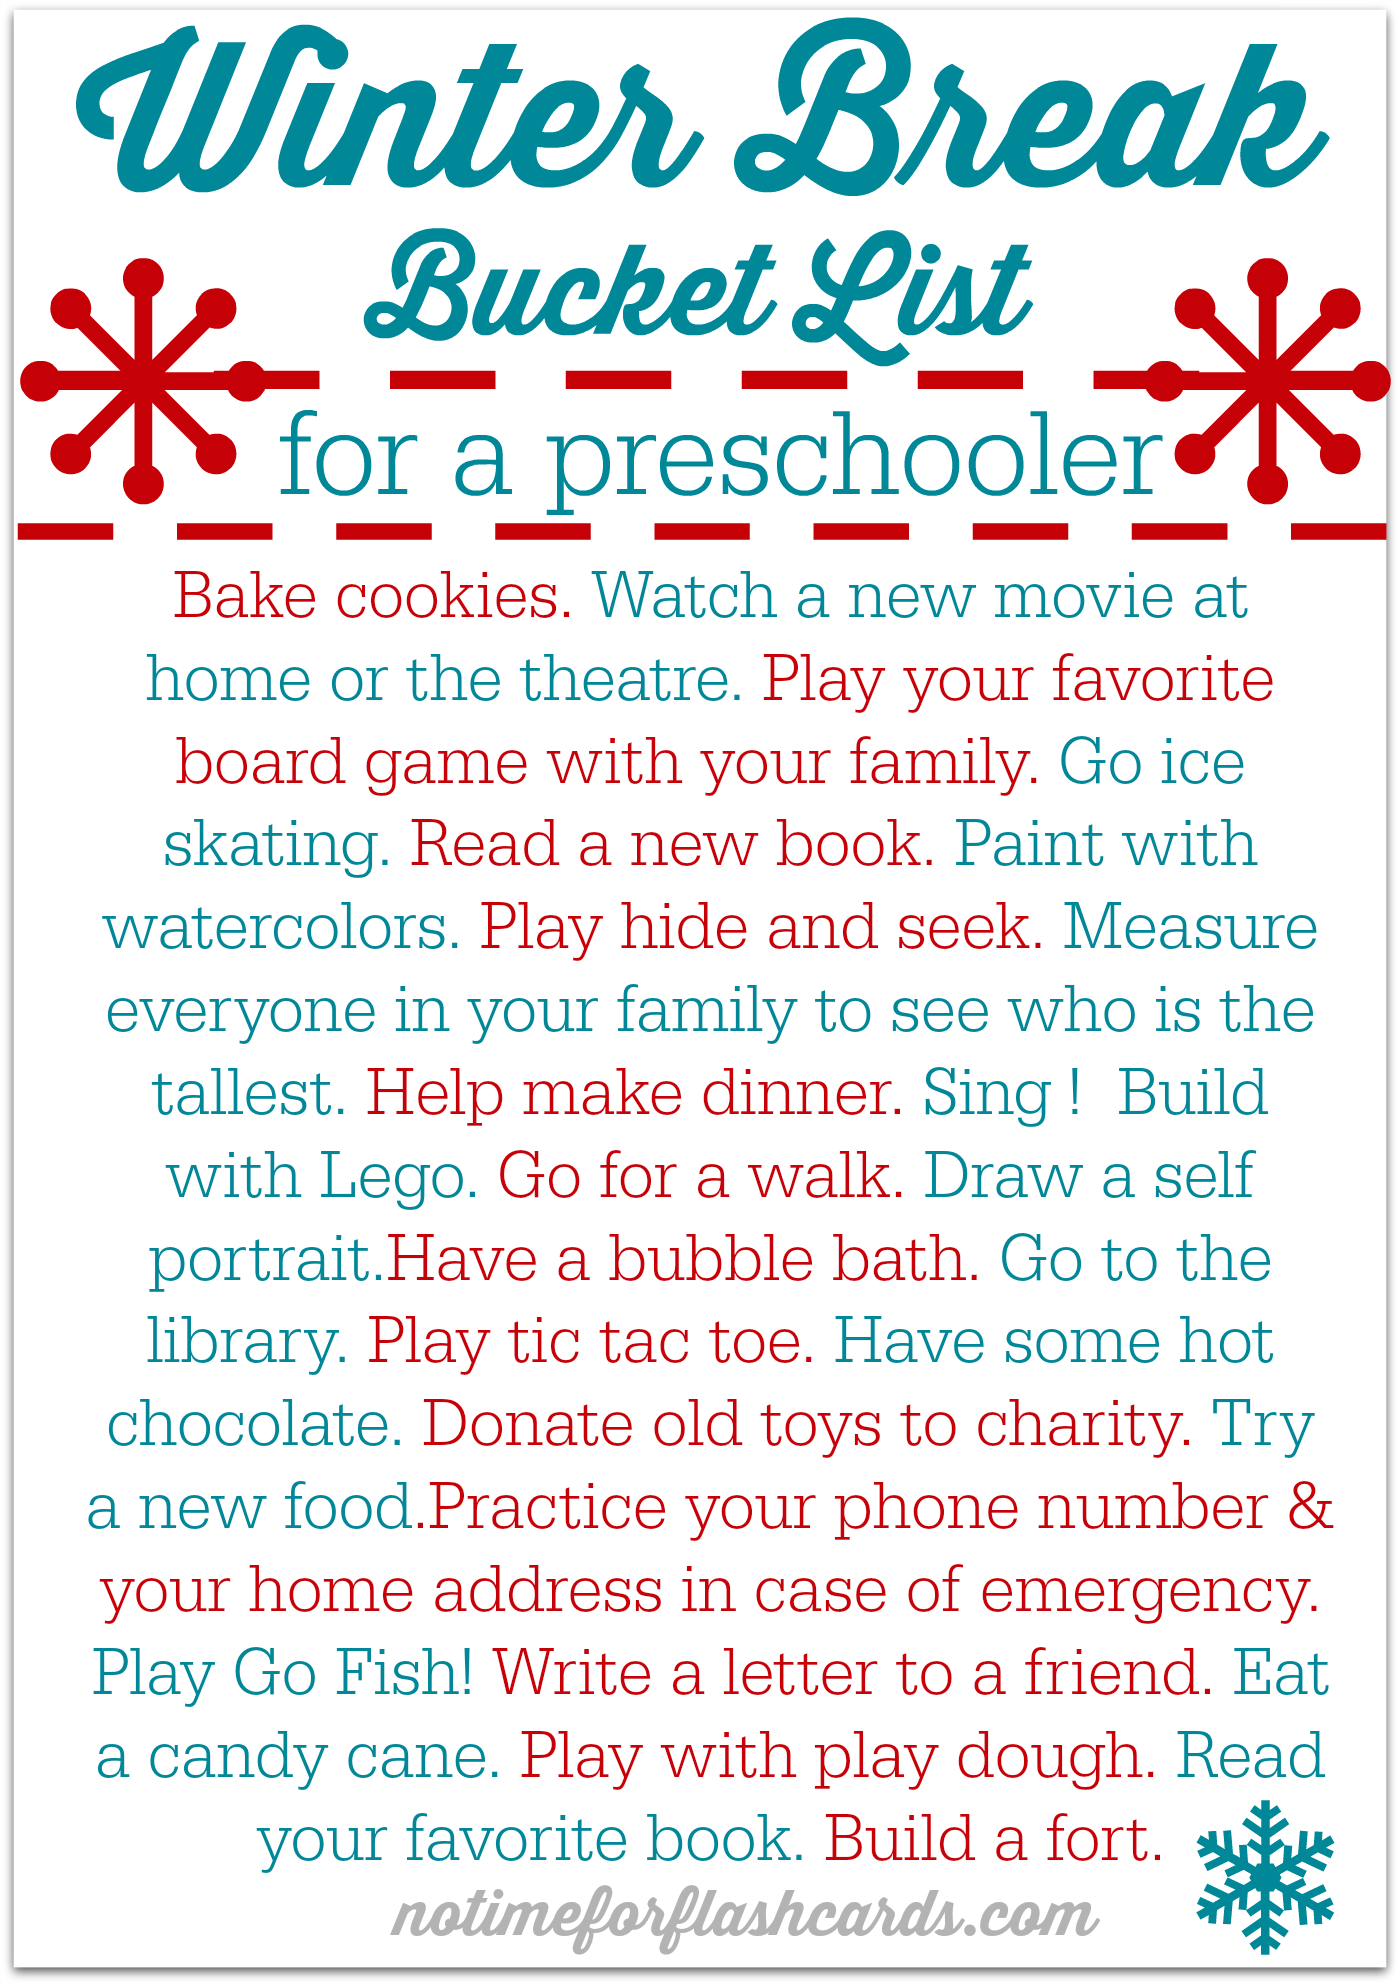 Free printable winter break bucket list for preschoolers for Fall break vacation ideas